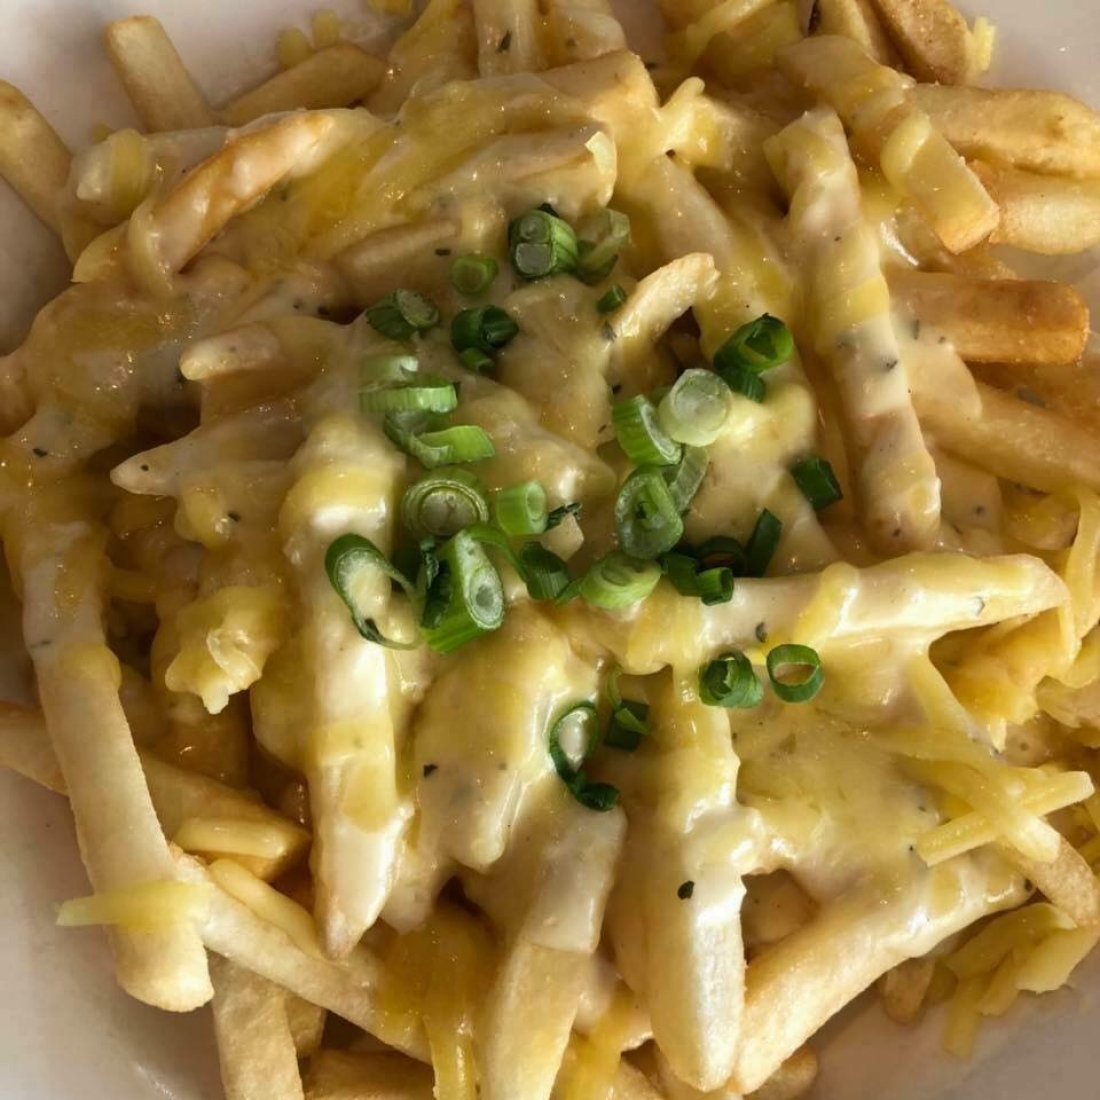 Loaded Cheesy Fries